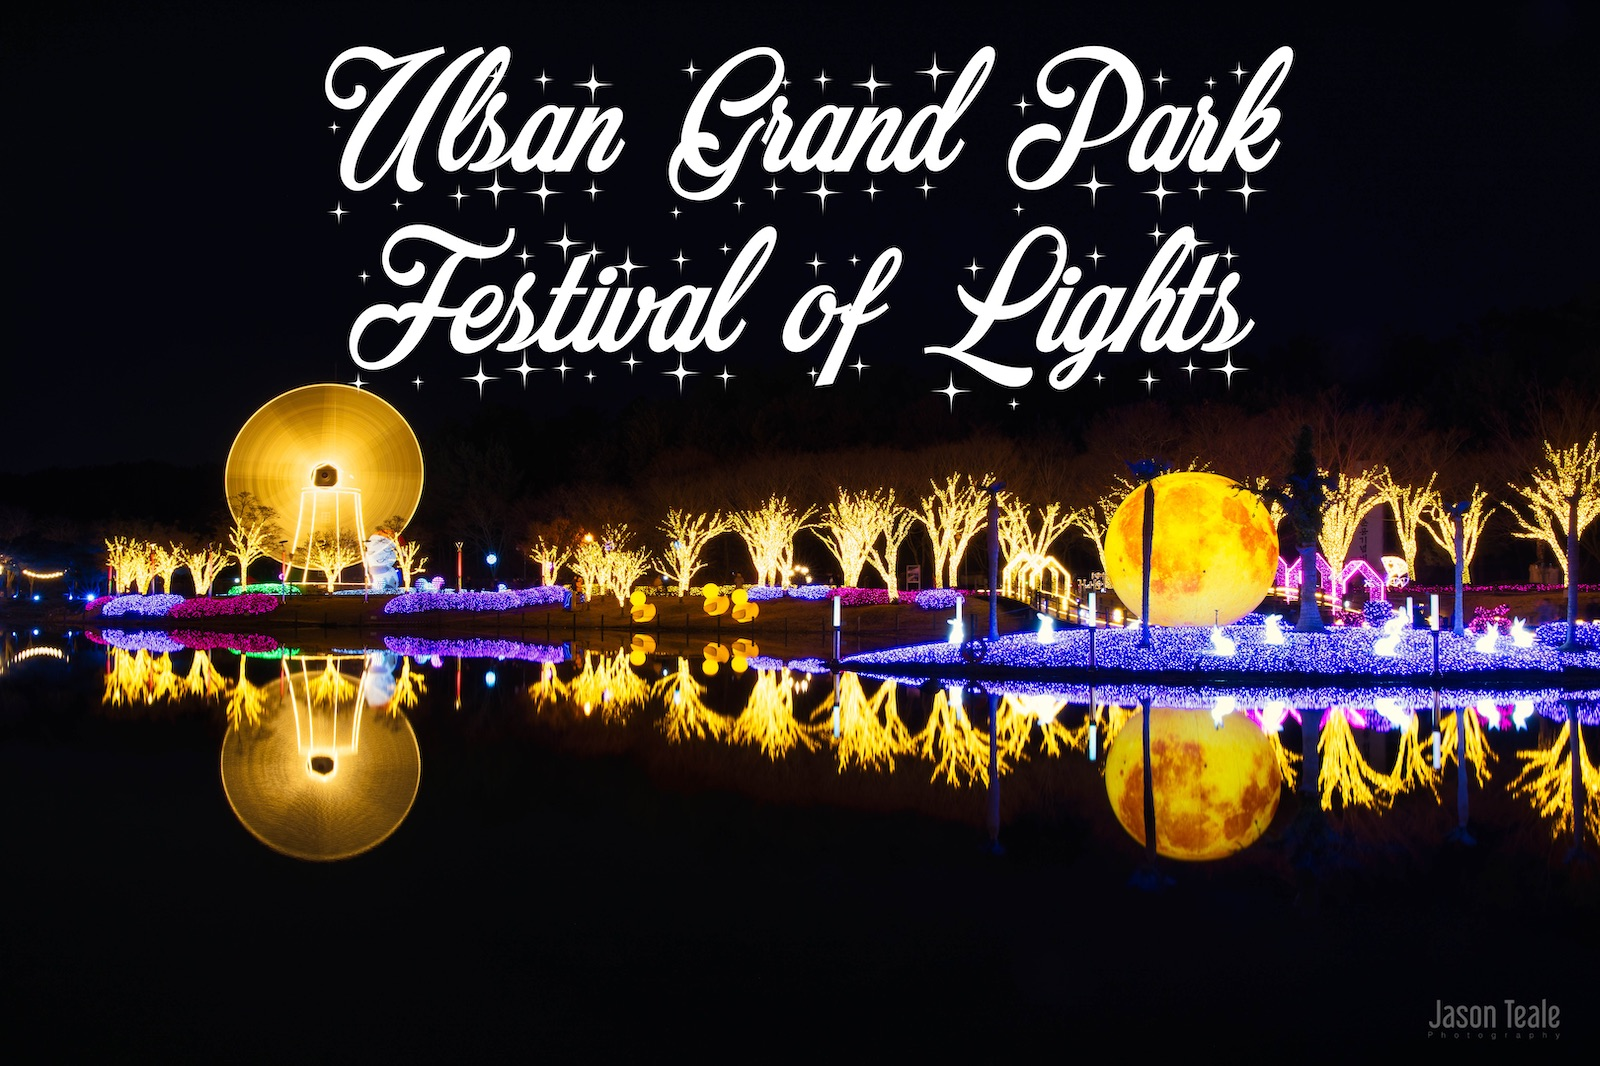 Ulsan Grand Park Festival of Lights 2019